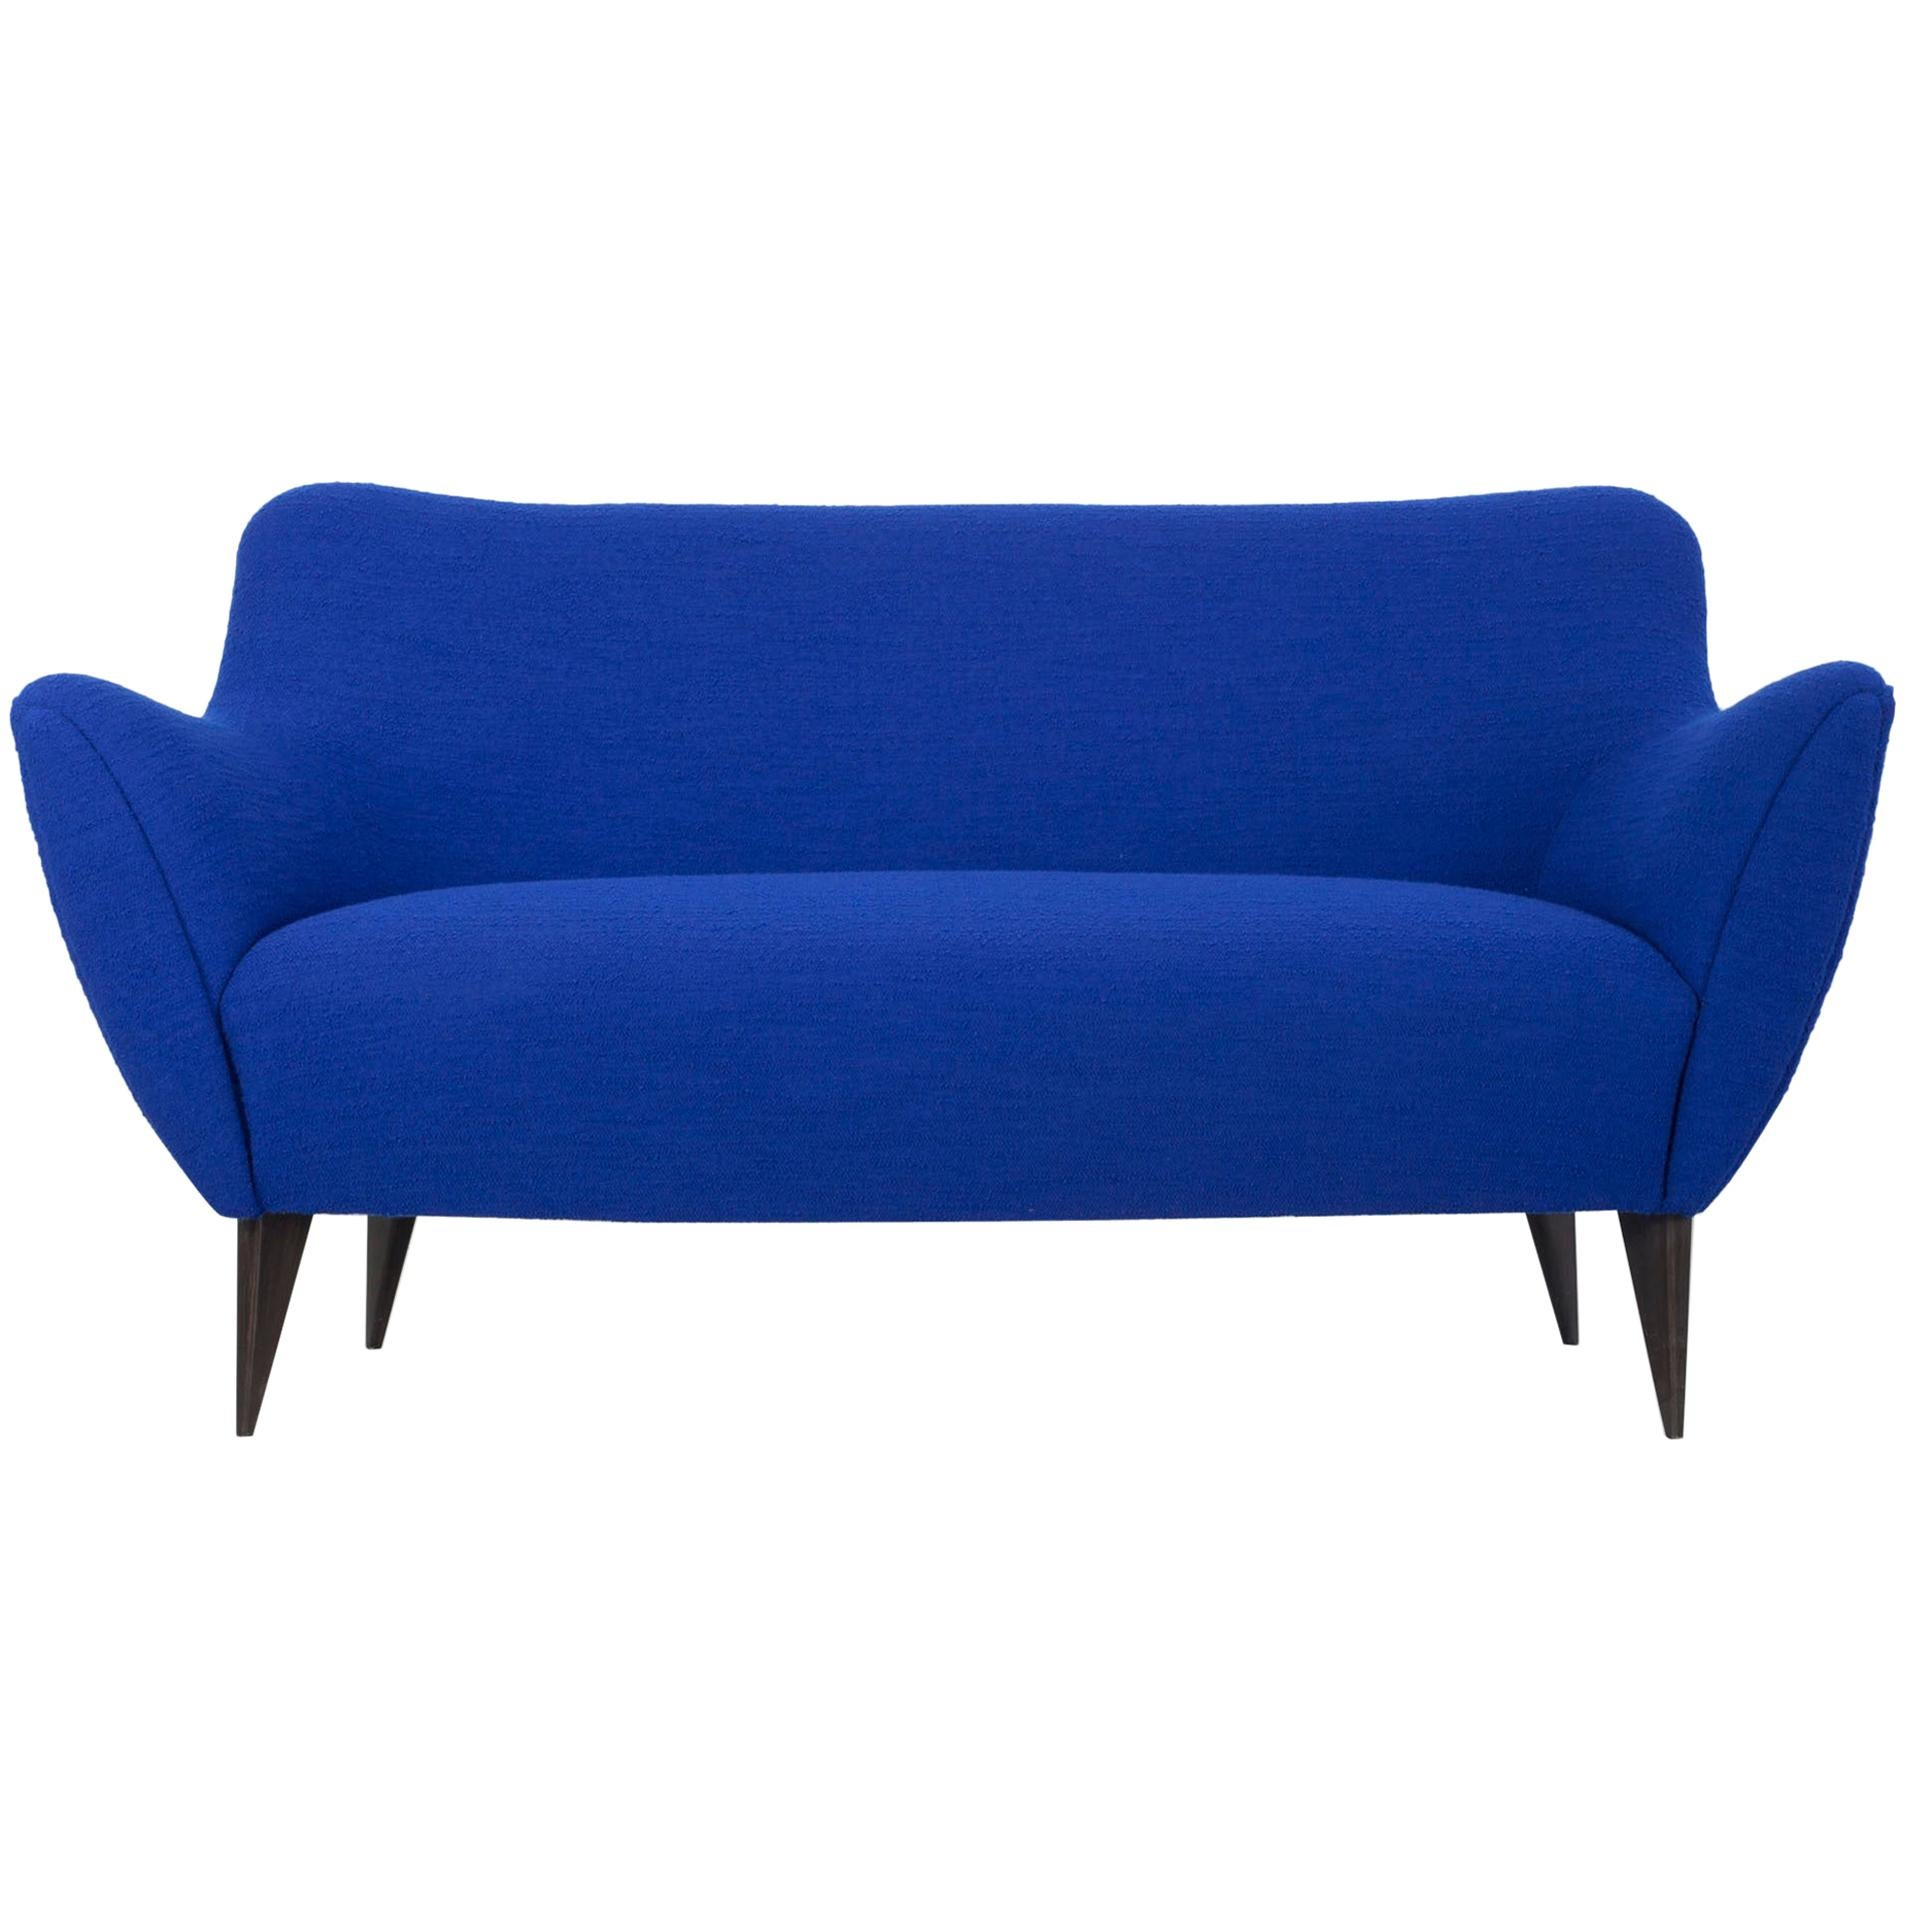 Blue Two-Seat Sofa, Design by Giulia Veronesi, ISA Bergamo, Italy, 1950s